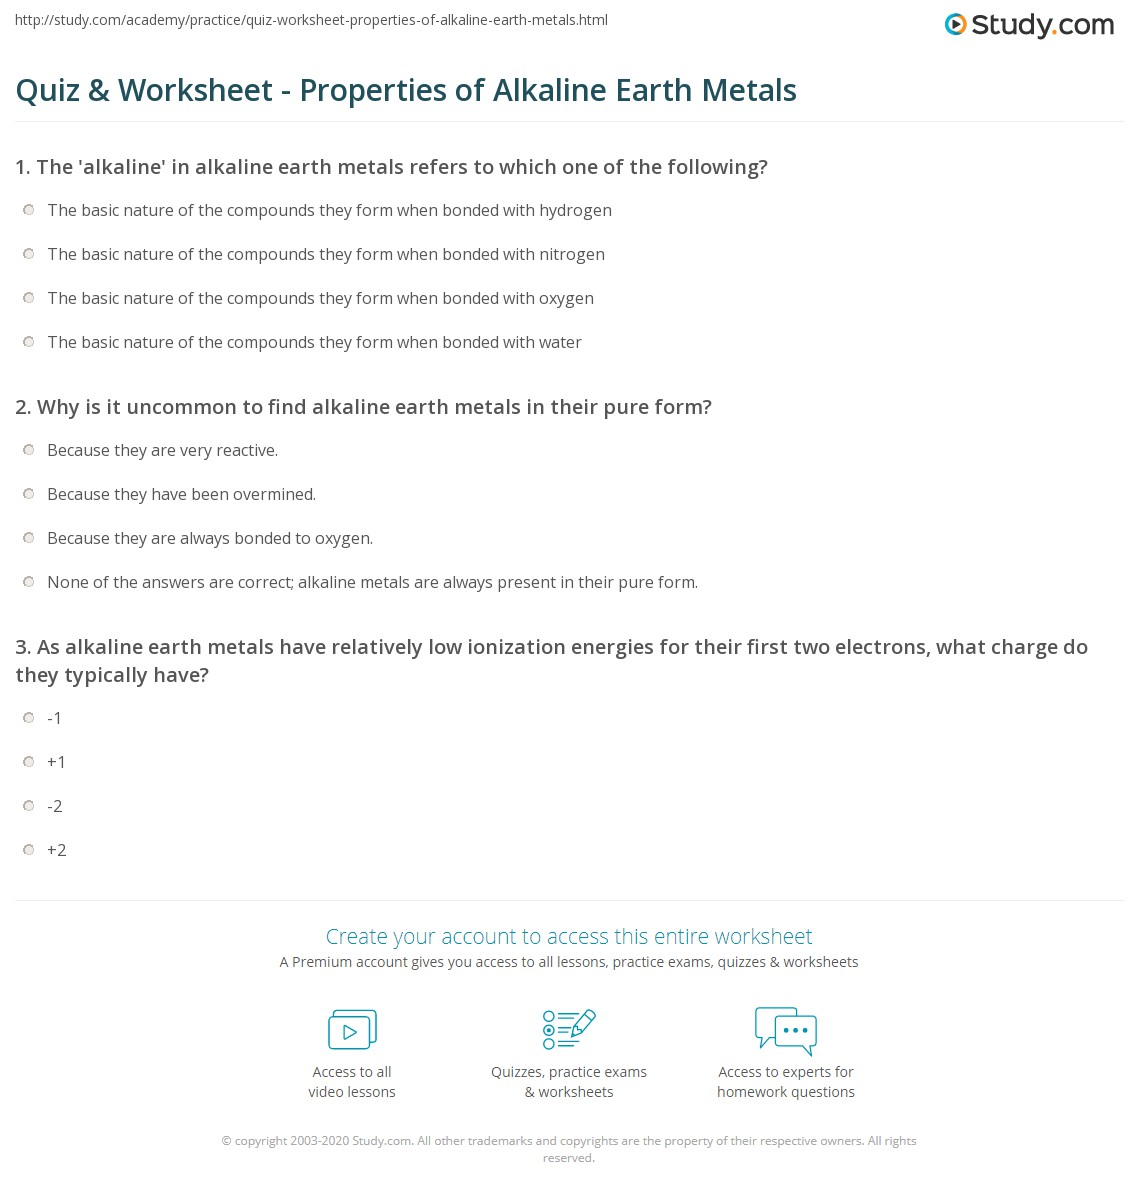 Quiz worksheet properties of alkaline earth metals study print alkaline earth metals definition properties characteristics worksheet urtaz